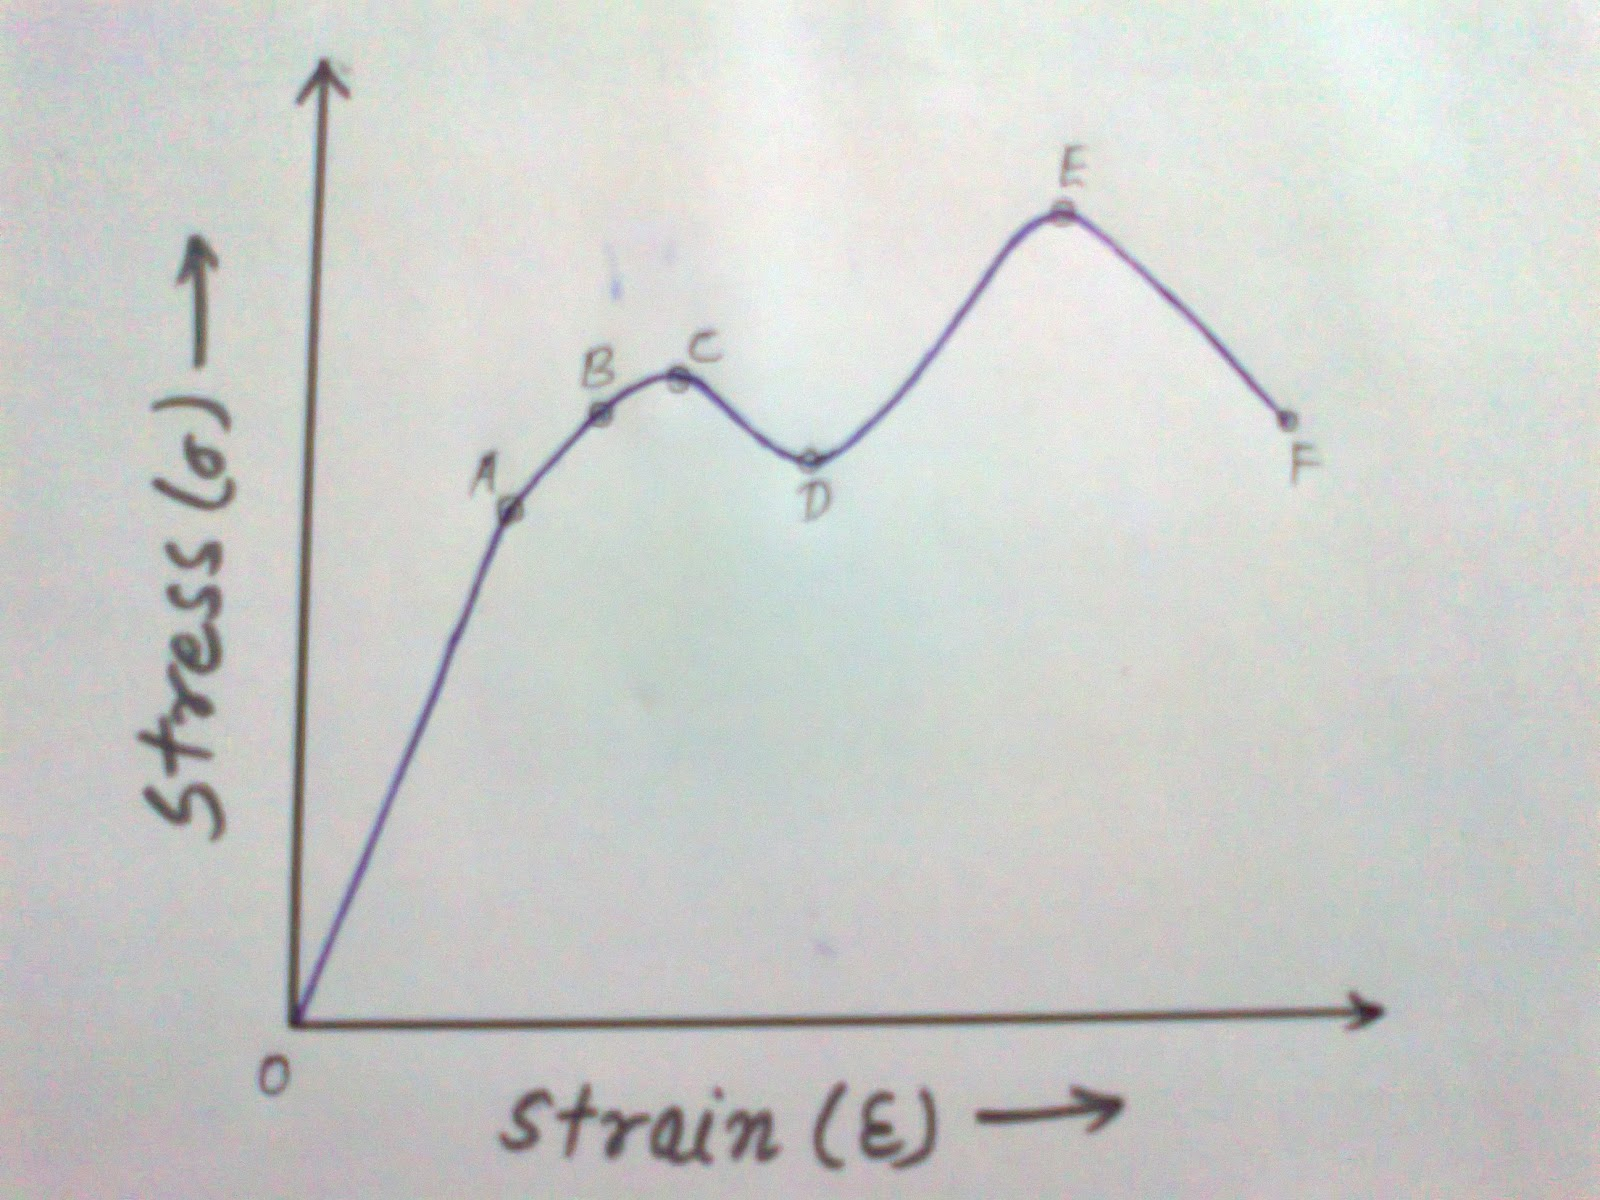 Engineer Biki Stress Strain Diagram Vs From Point O To A Straight Line Which Represents That The Is Proportional Beyond Curve Slightly Deviated